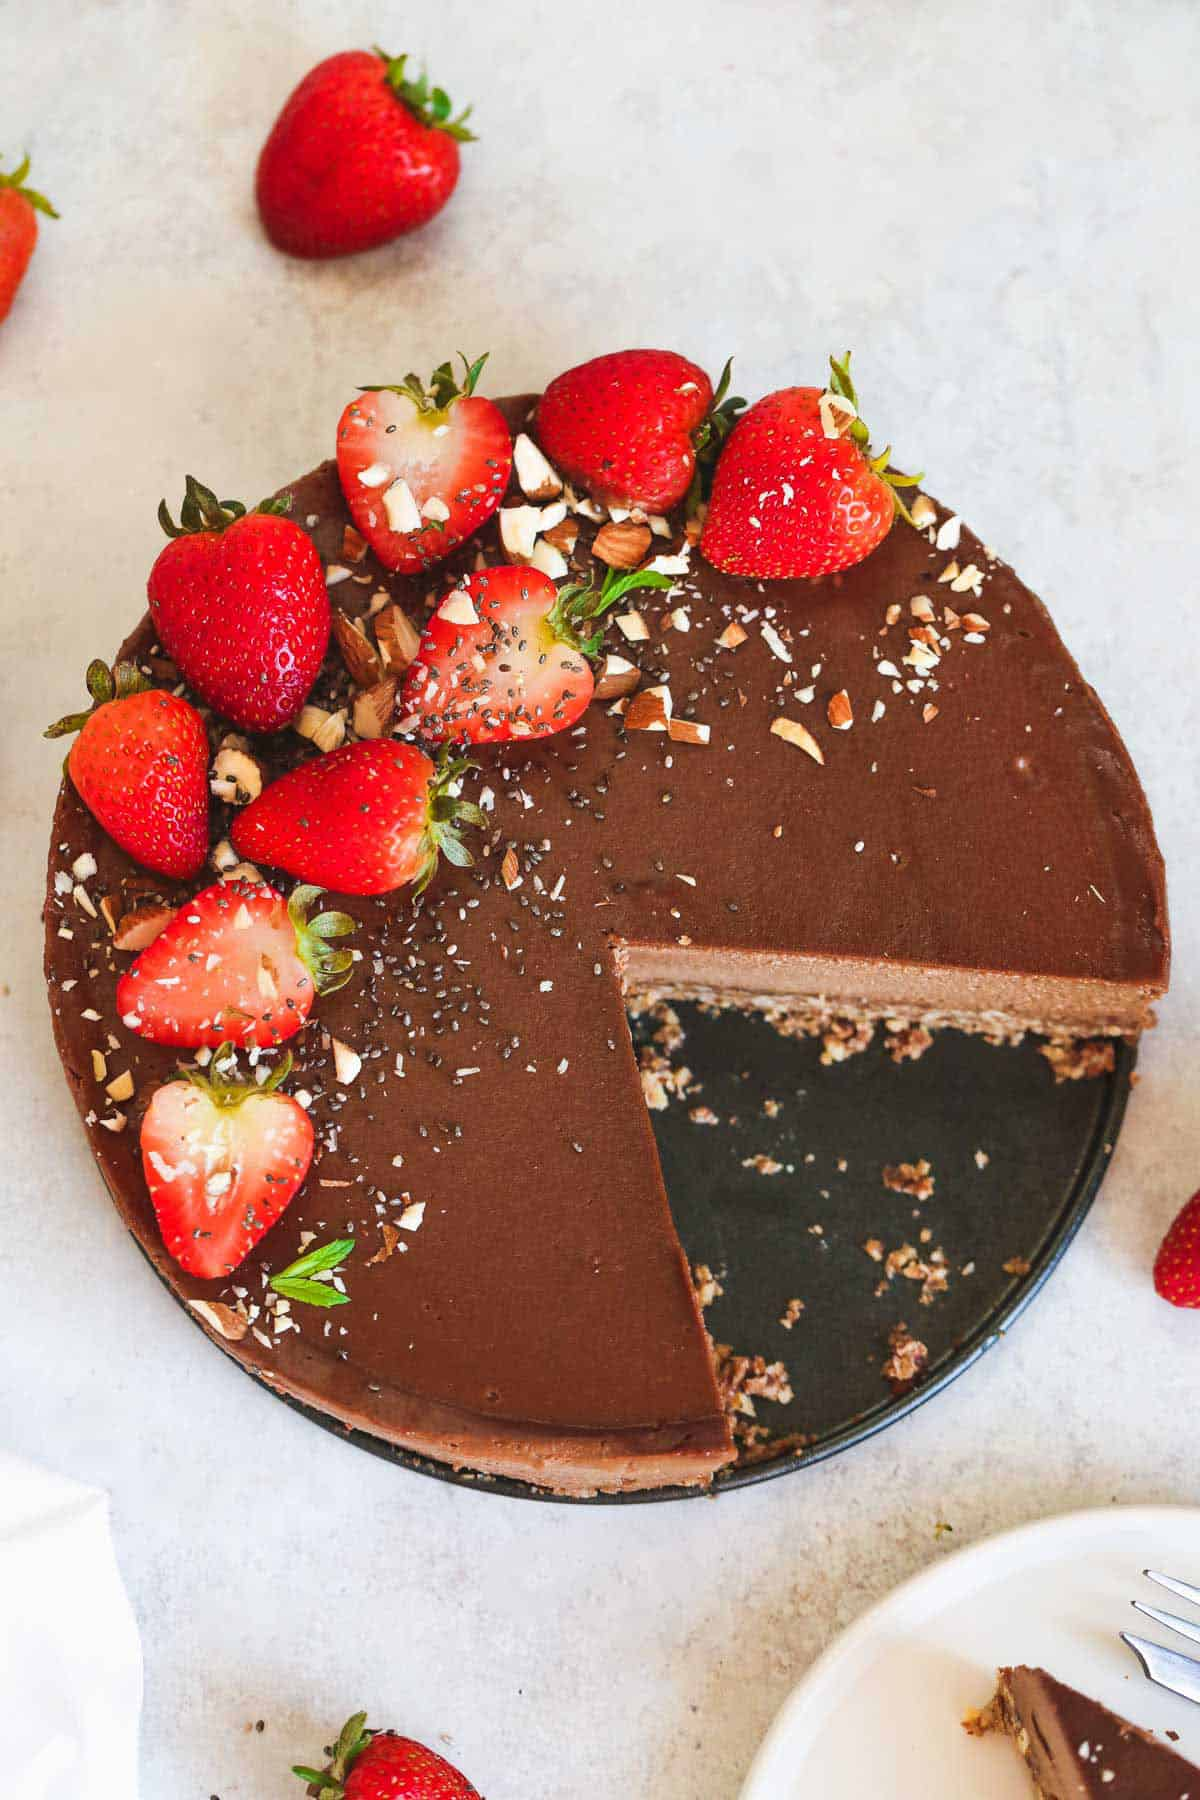 Vegan chocolate cheesecake with strawberries on top